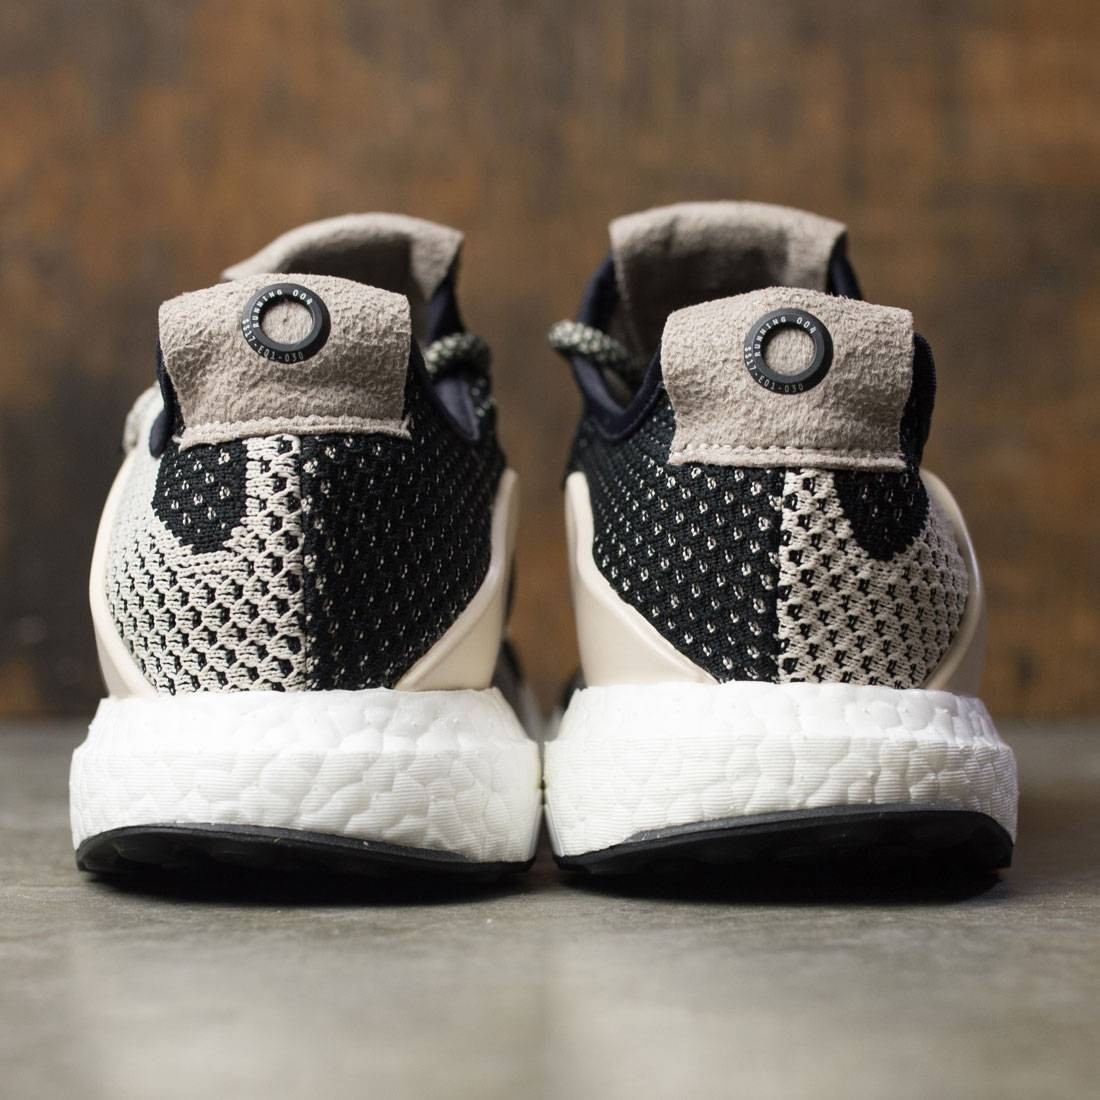 40e26bef0 Adidas Consortium Day One Men ADO UltraBoost ZG (brown   clear brown    light brown   black)